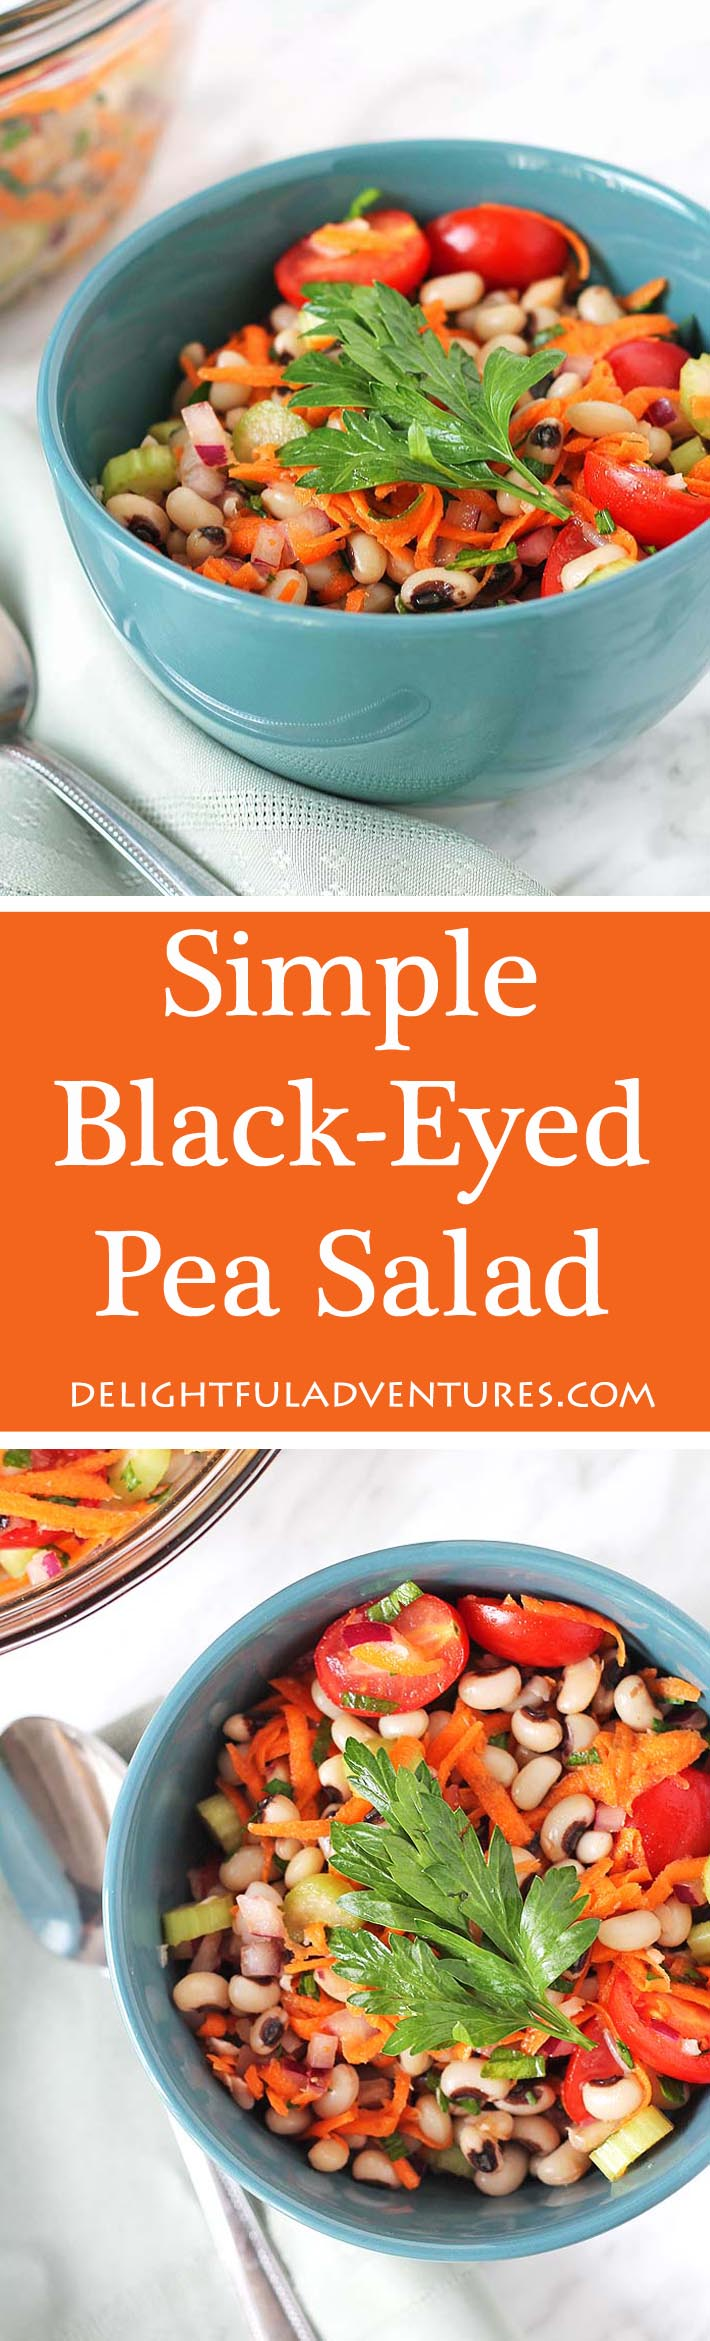 Perfect for lunch, a side dish, or even a light supper, you're going to love this Simple Black-Eyed Pea Salad because it's delicious and so easy to make. #blackeyedpeas #blackeyedpeassalad #beansalad